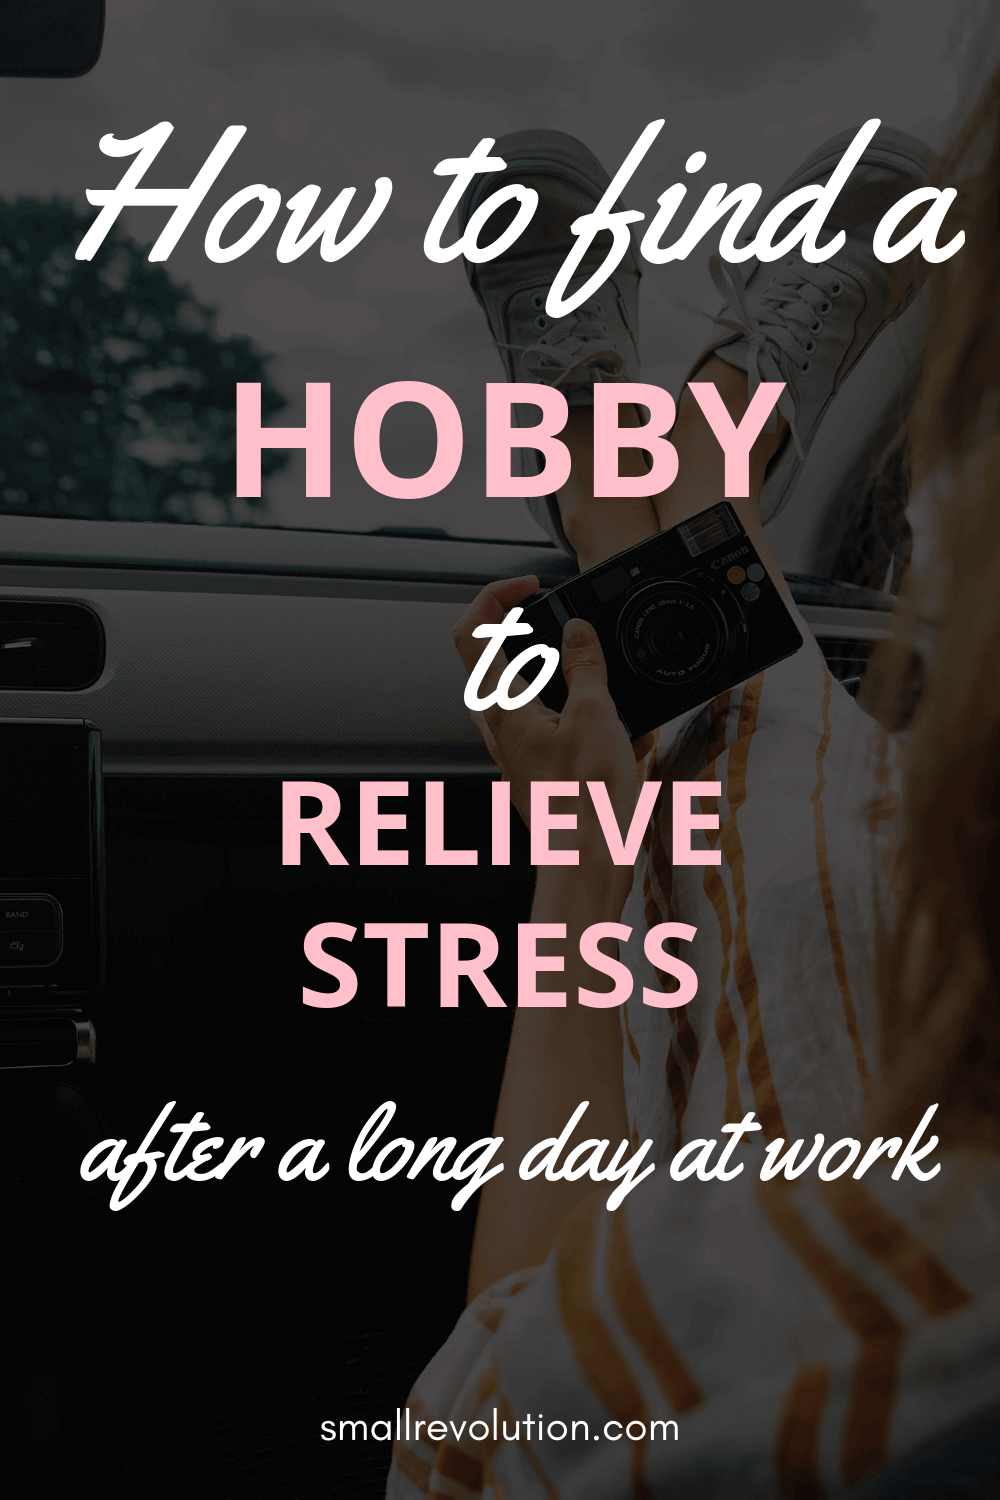 How to find a hobby to relieve stress after a long day at work